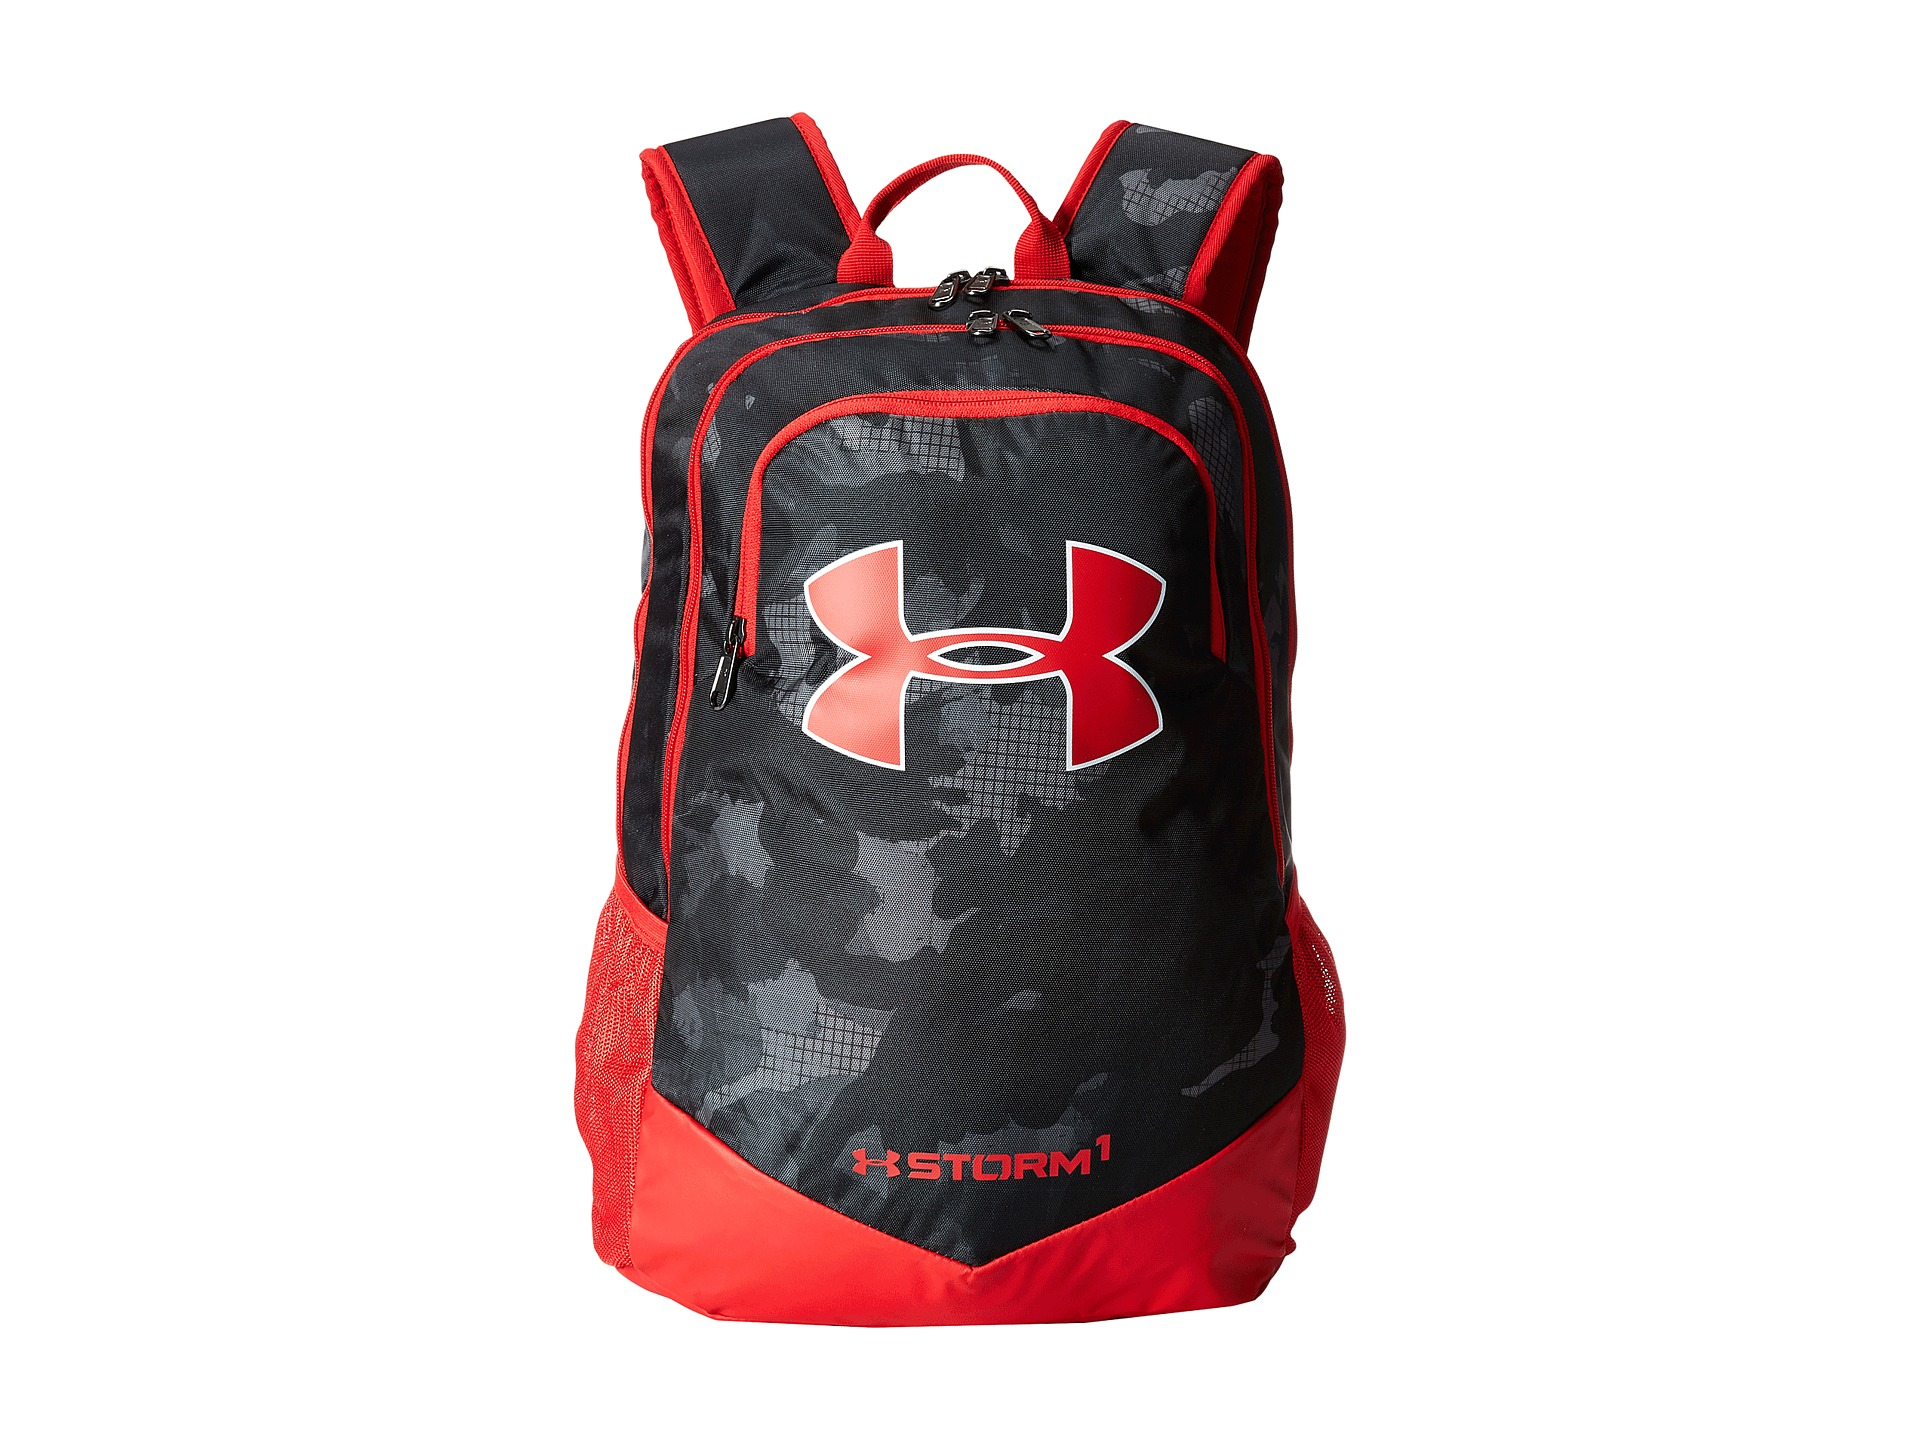 97d8e5473b66 backpack under armor cheap   OFF35% The Largest Catalog Discounts